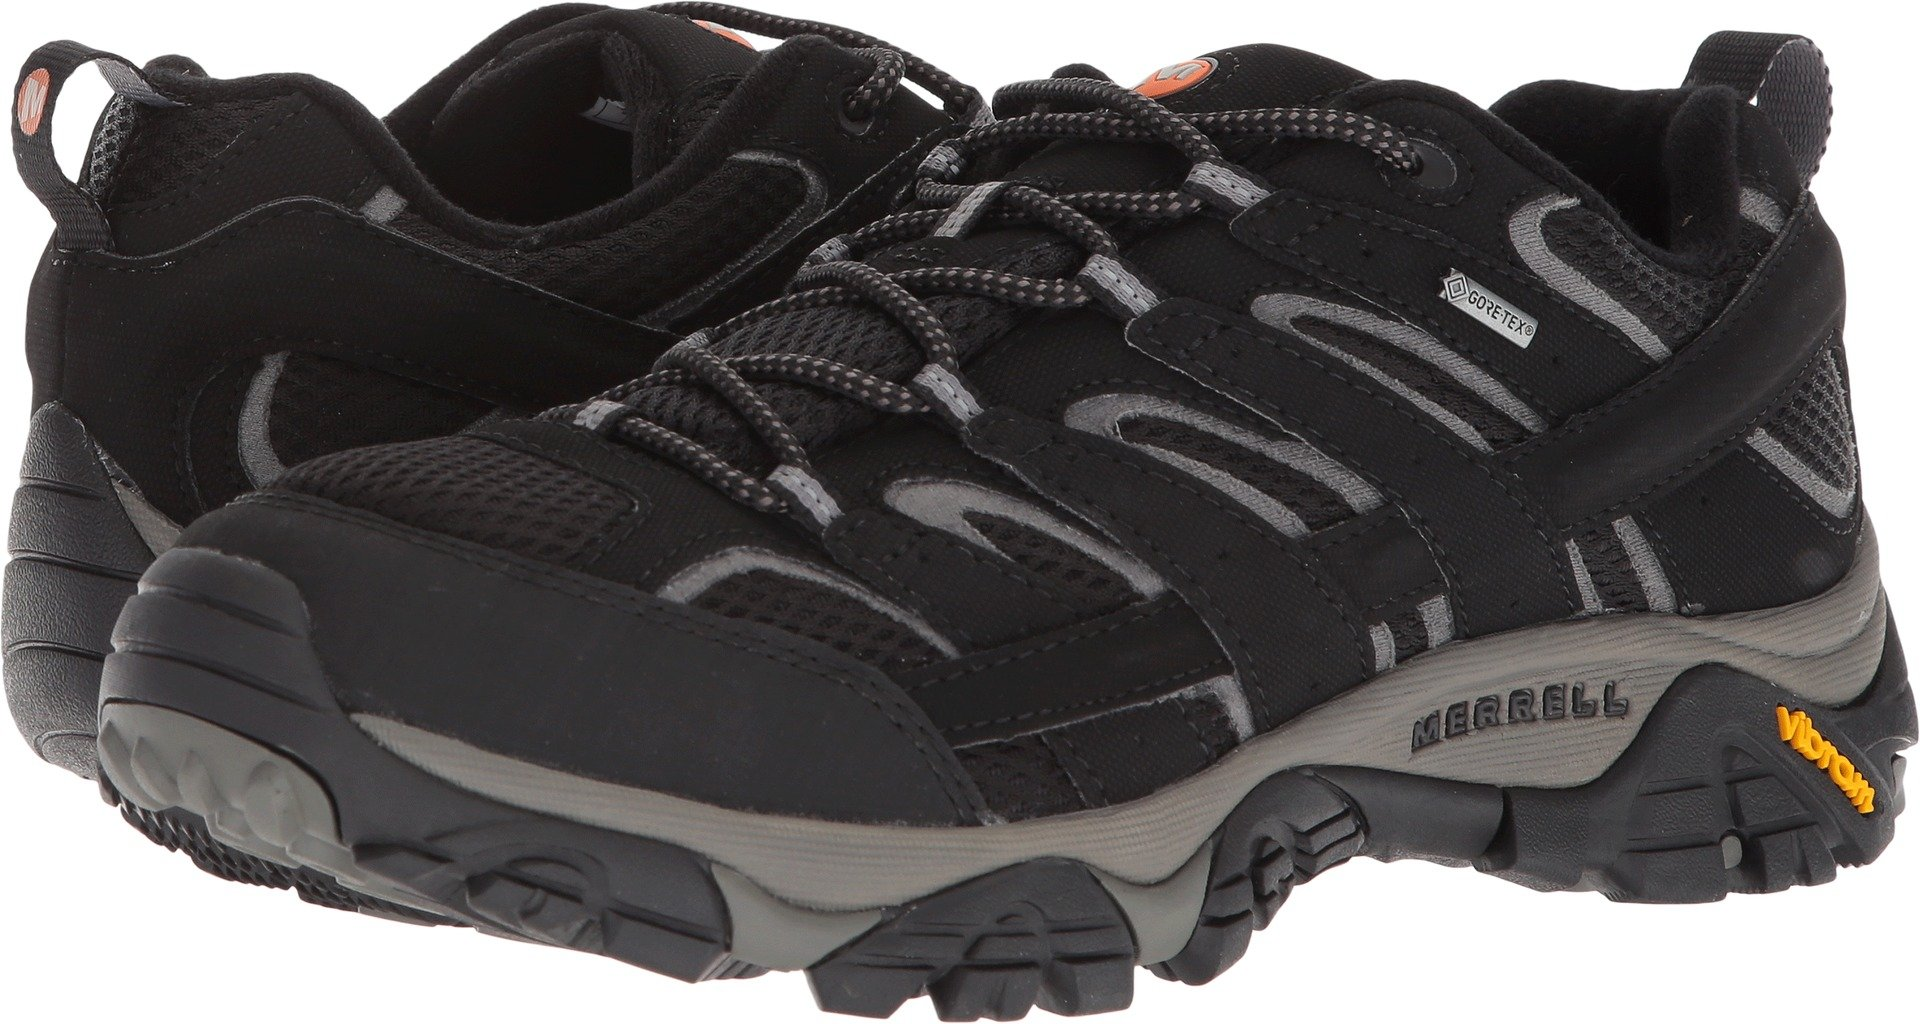 Merrell Men's Moab 2 GTX Hiking Shoe Black 11 D(M) US by Merrell